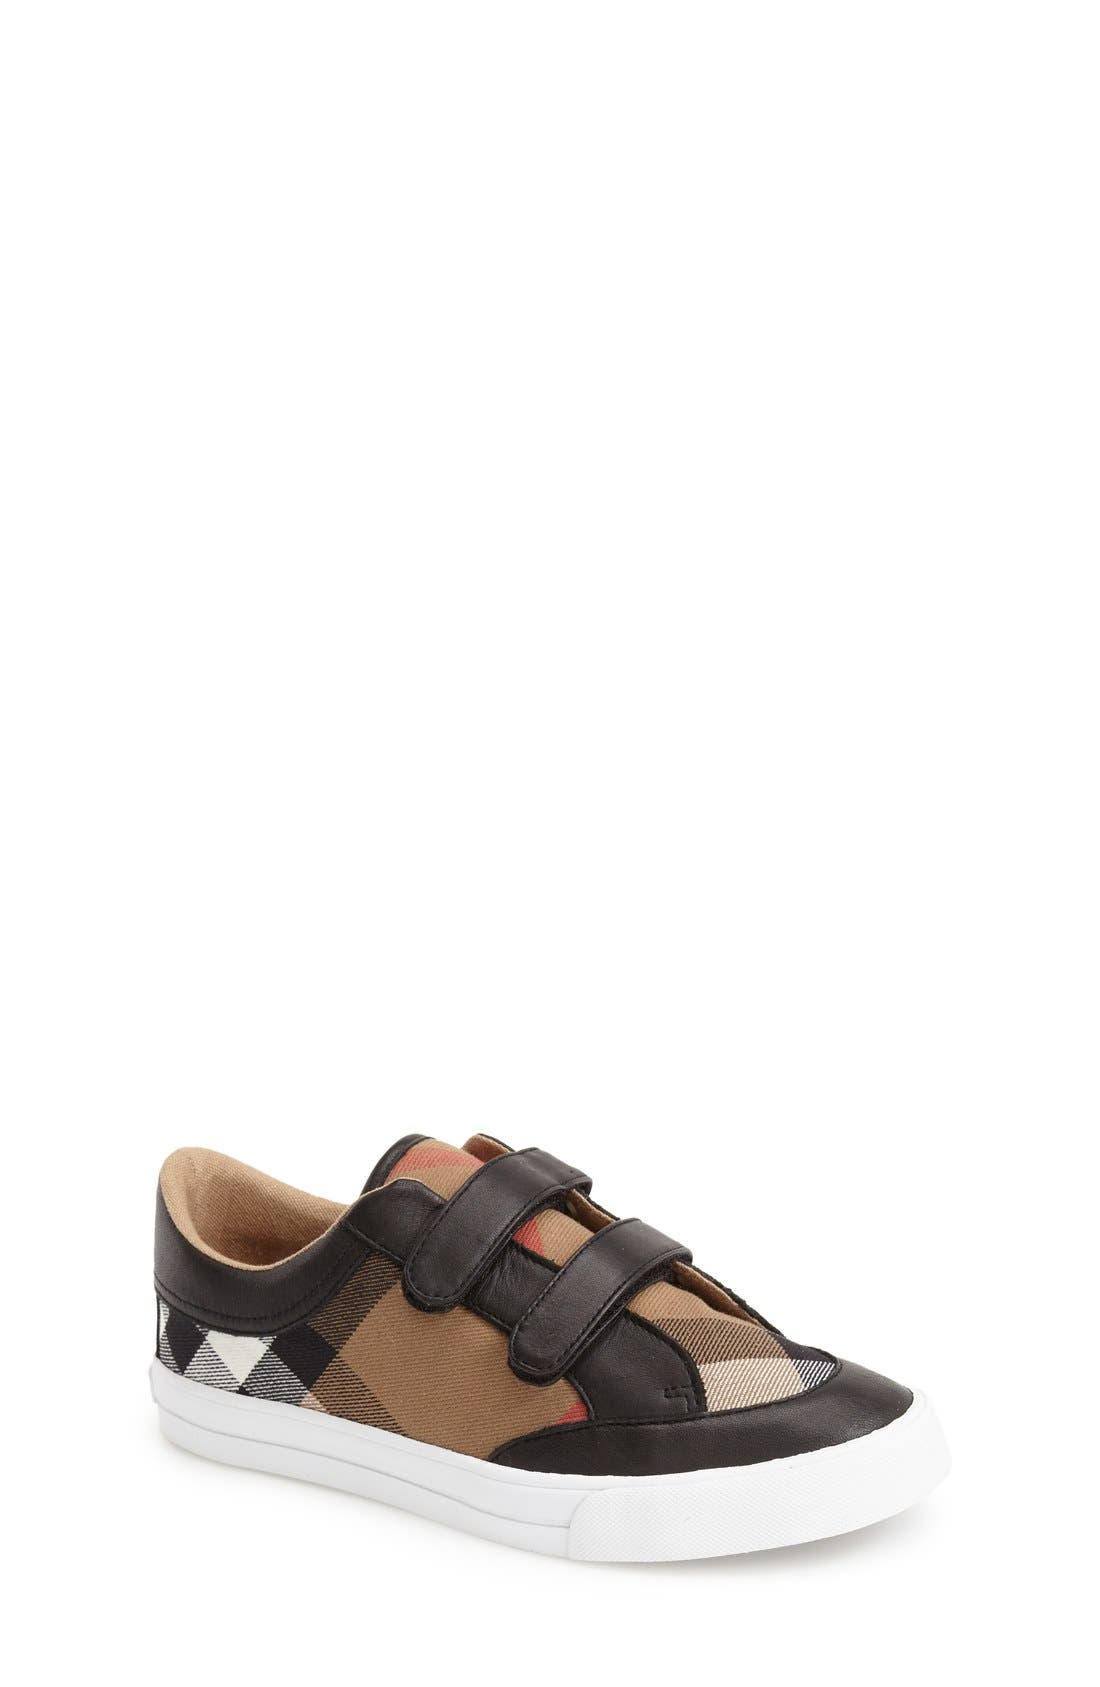 Burberry Mini Heacham Sneaker (Walker, Toddler & Little Kid)